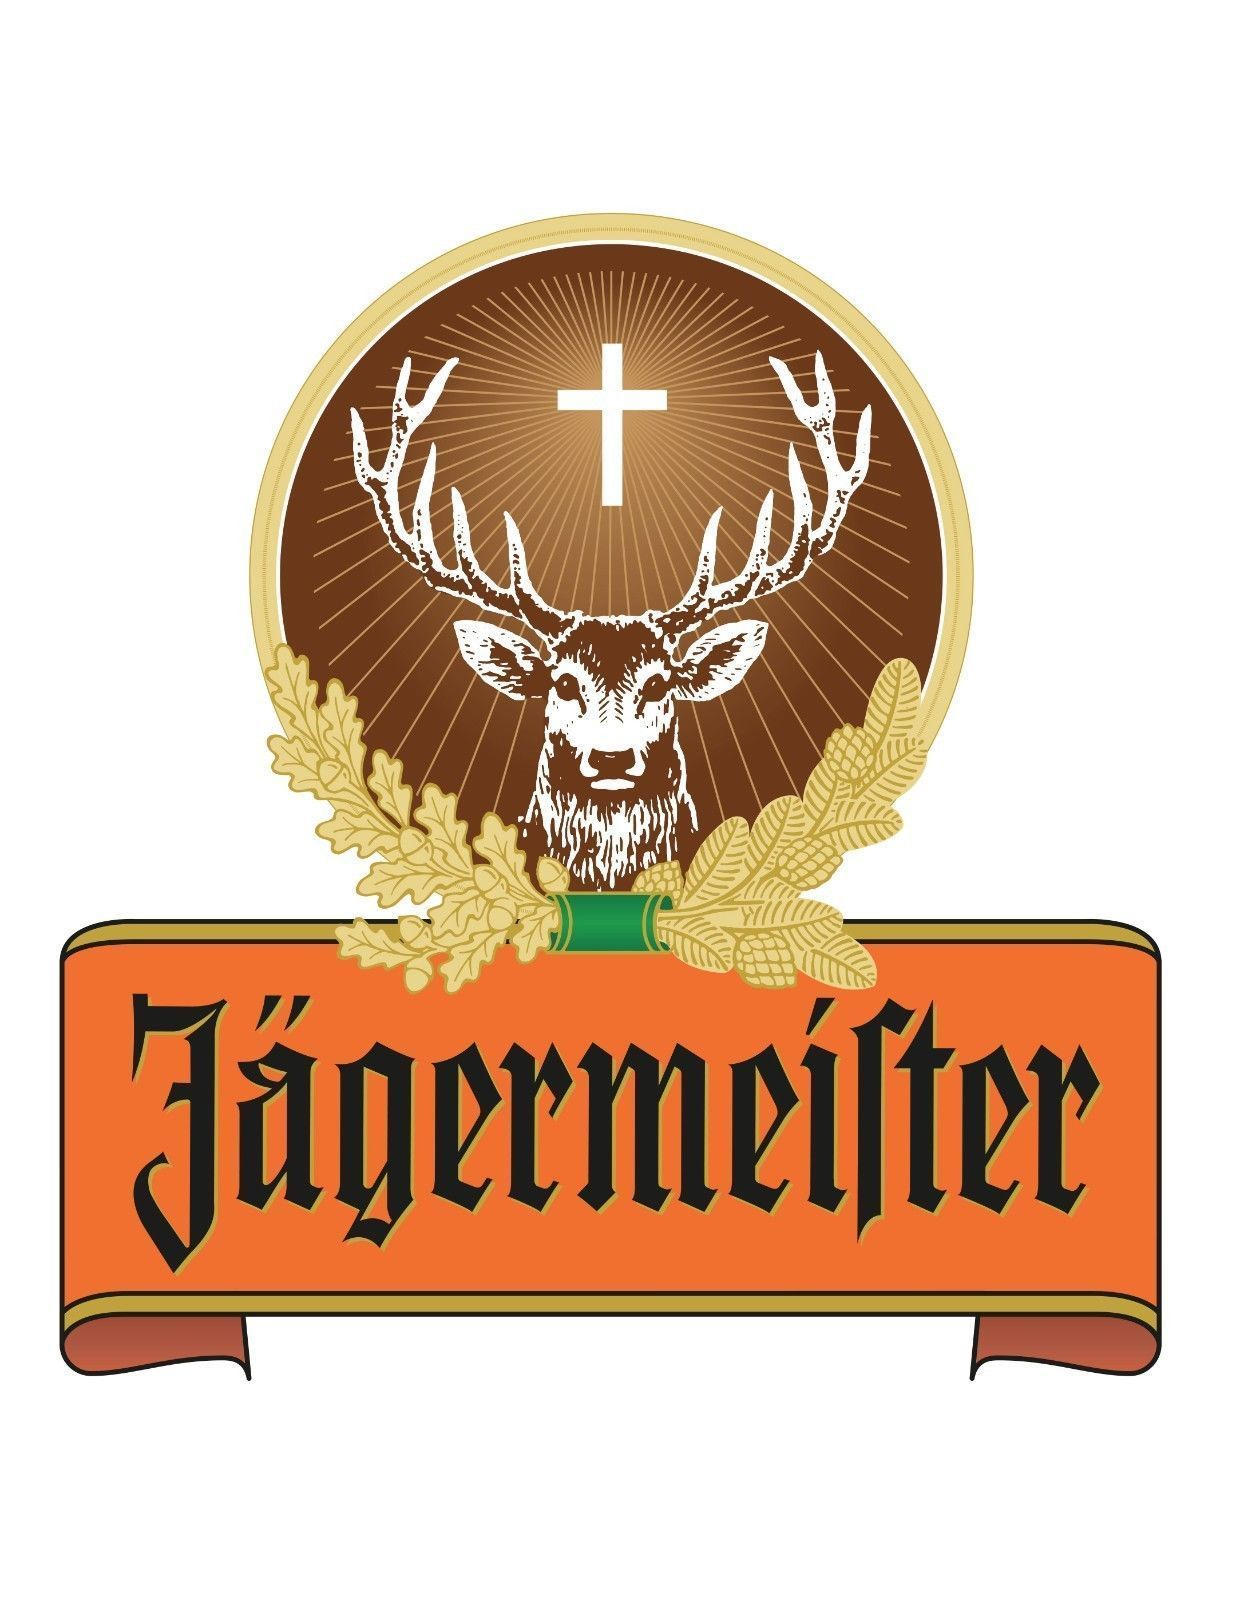 Jagermeister sticker decal many sizes wall truck car wall vinyl logo